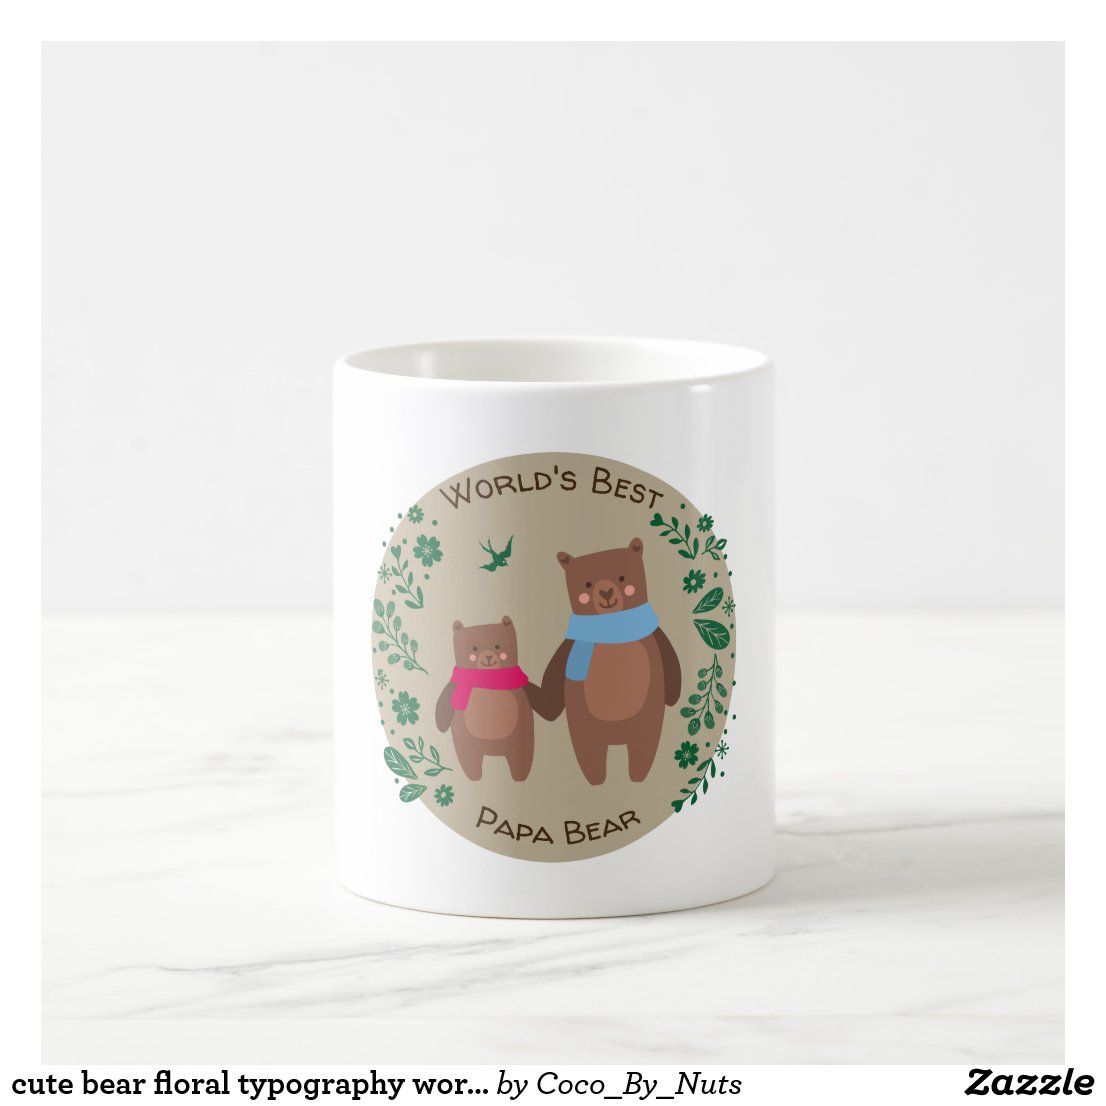 cute bear floral typography world's best papa bear coffee mug